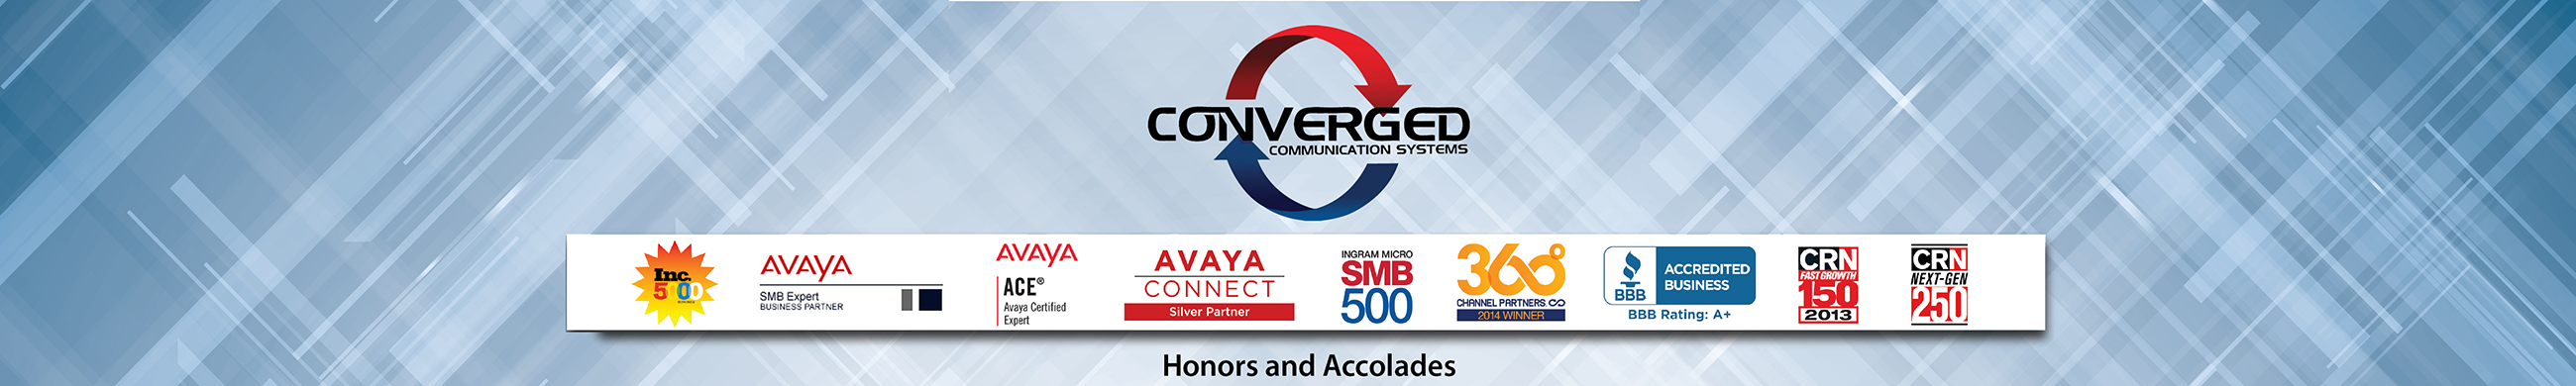 Converged awards and accolades